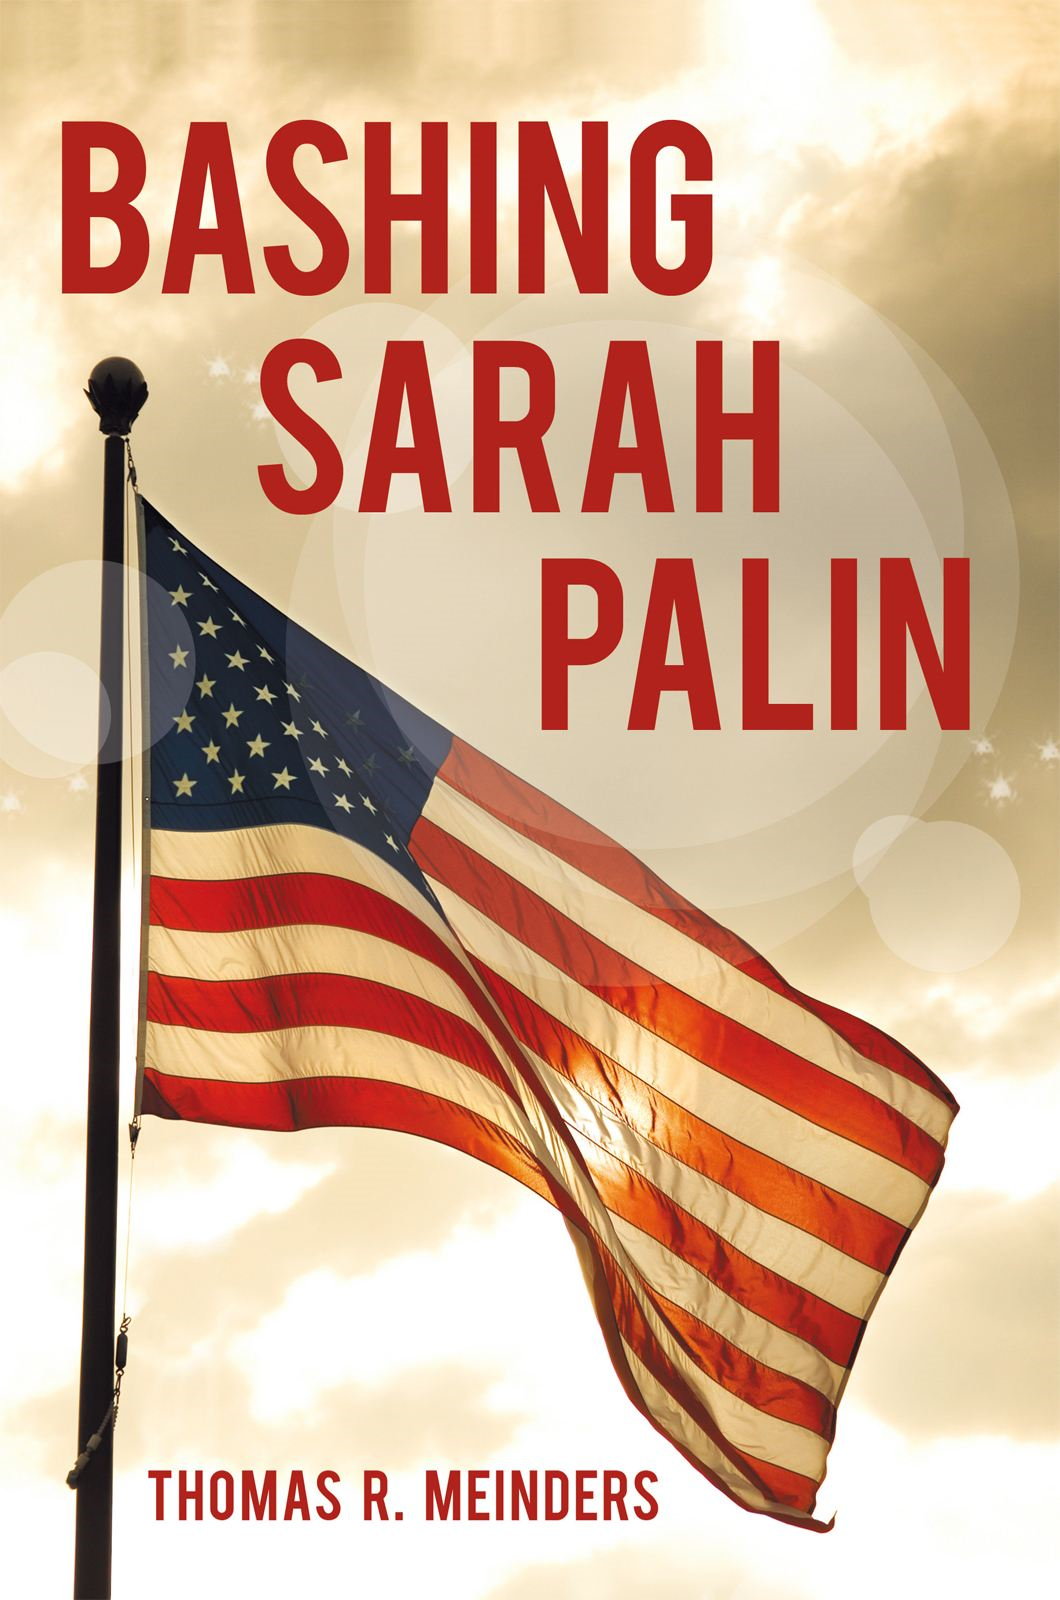 Bashing Sarah Palin By: Thomas R. Meinders